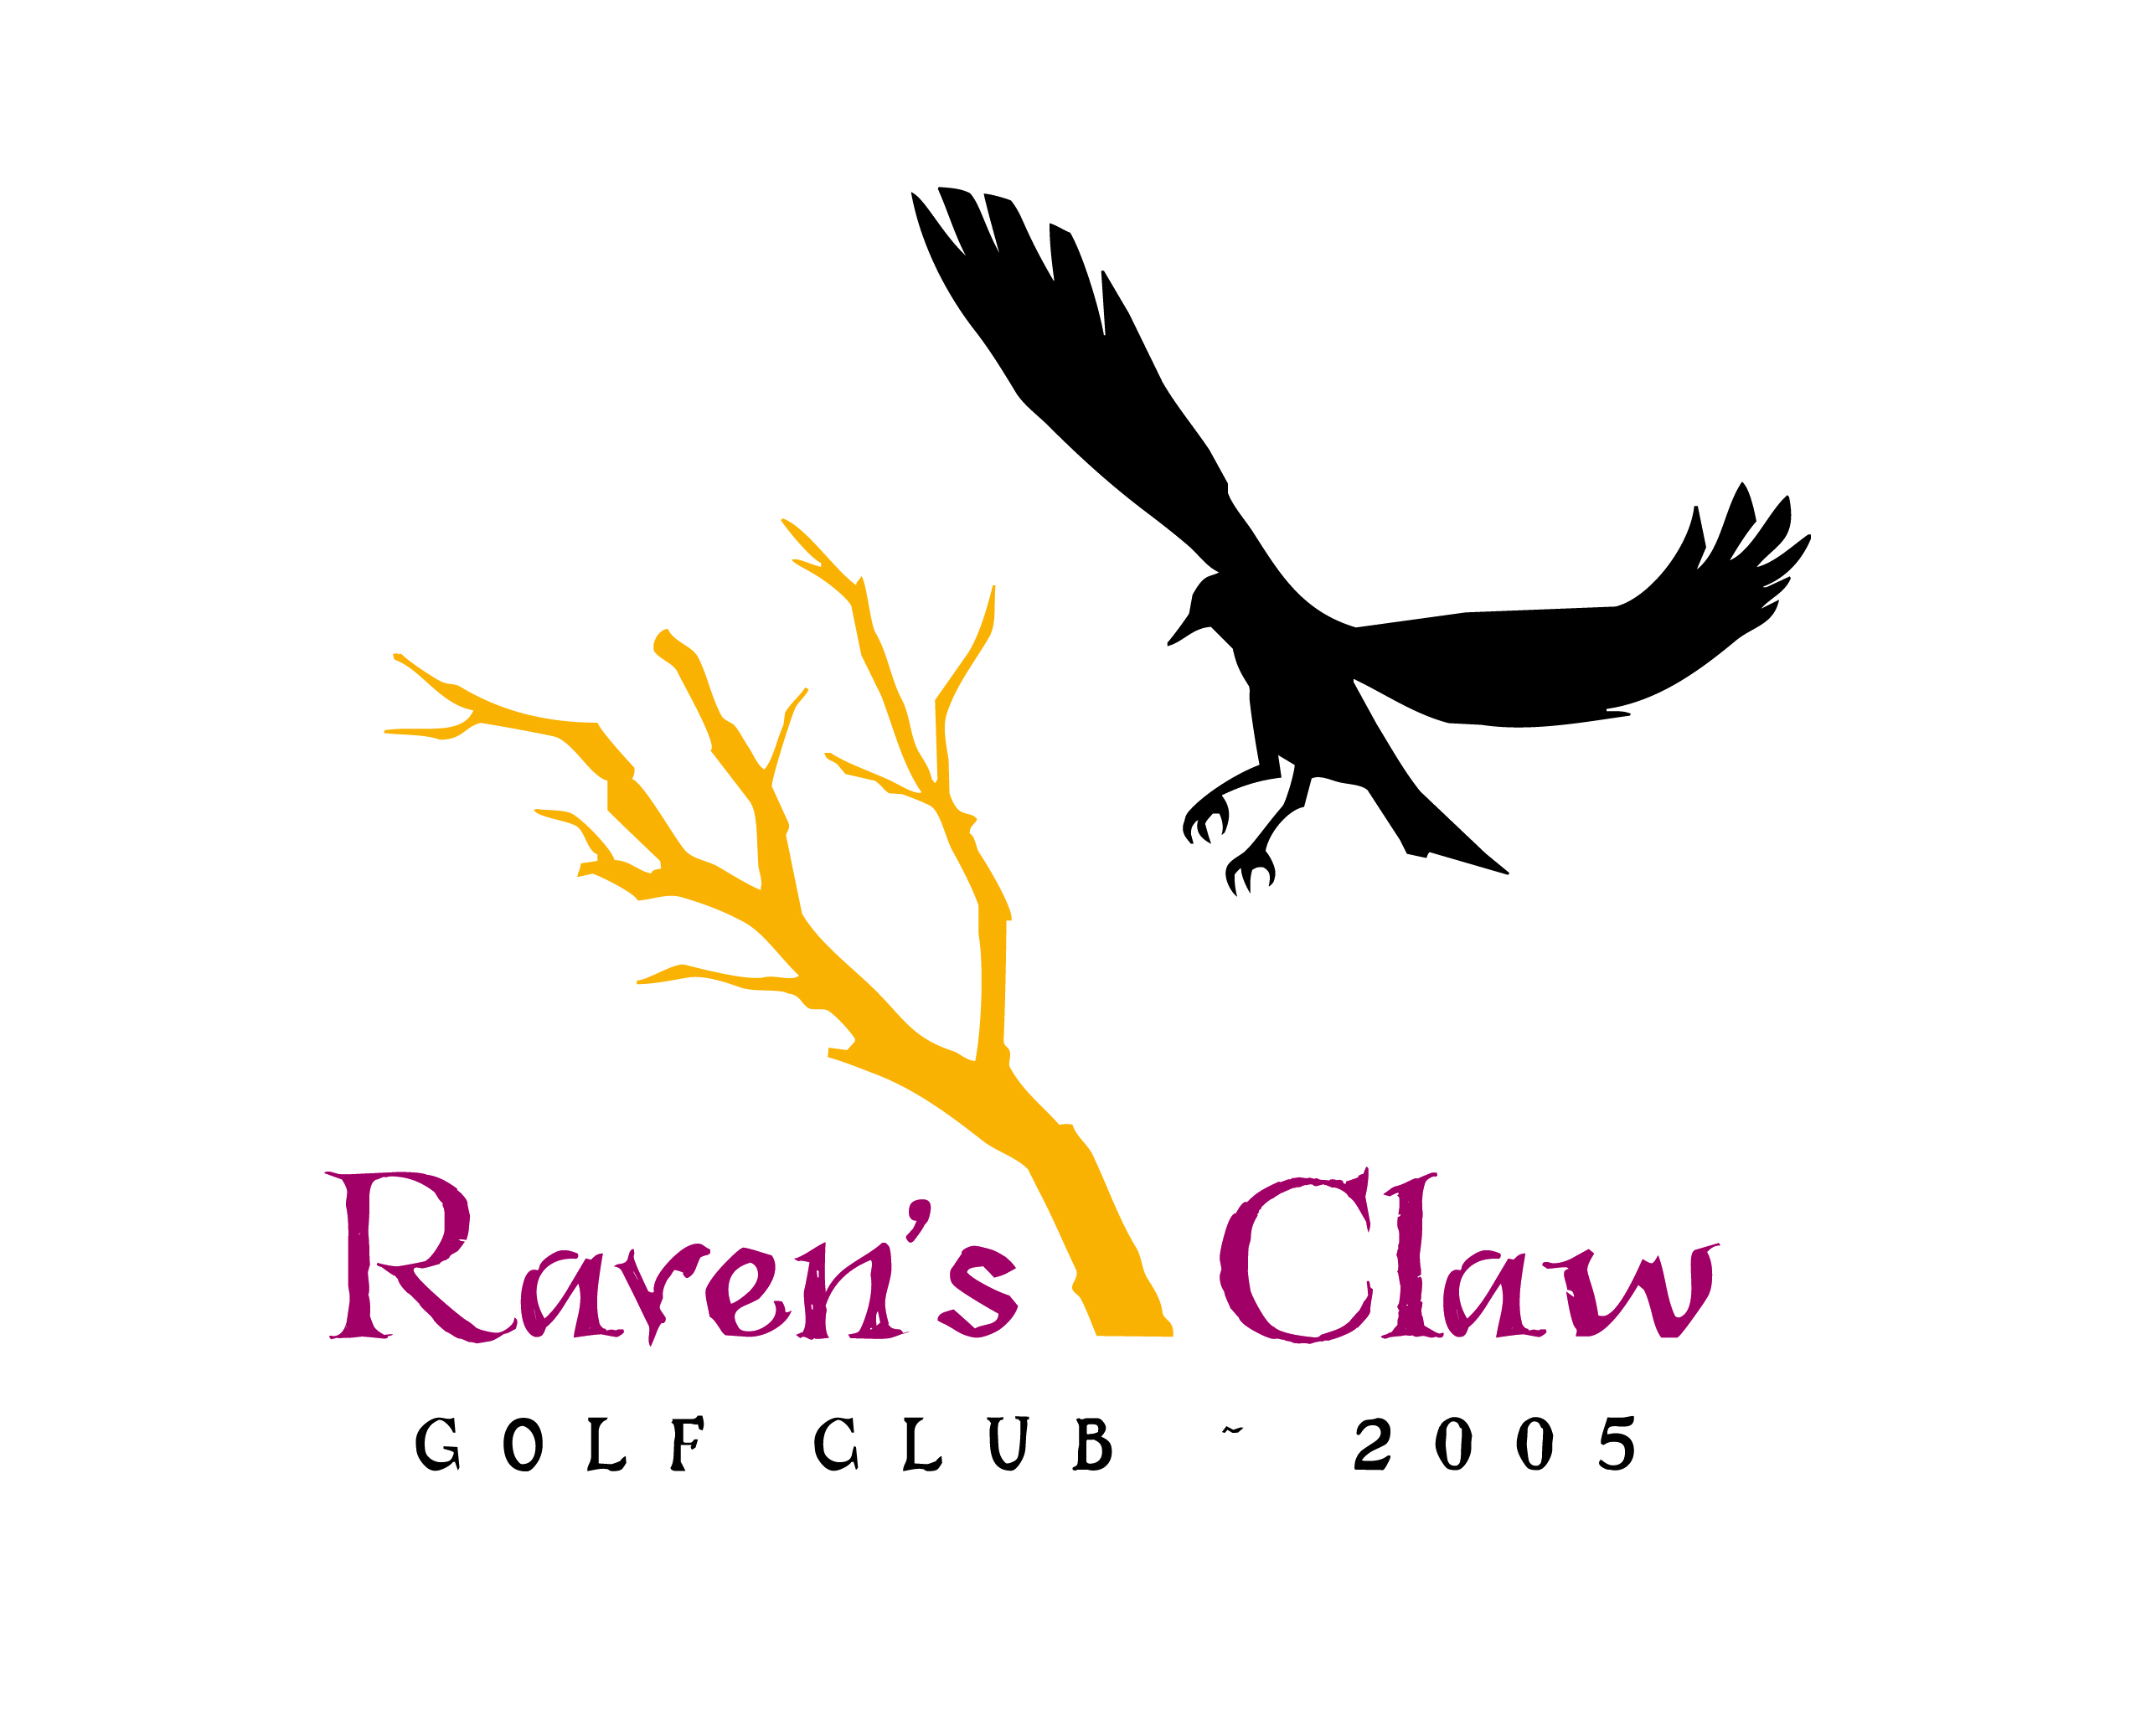 Raven's Claw